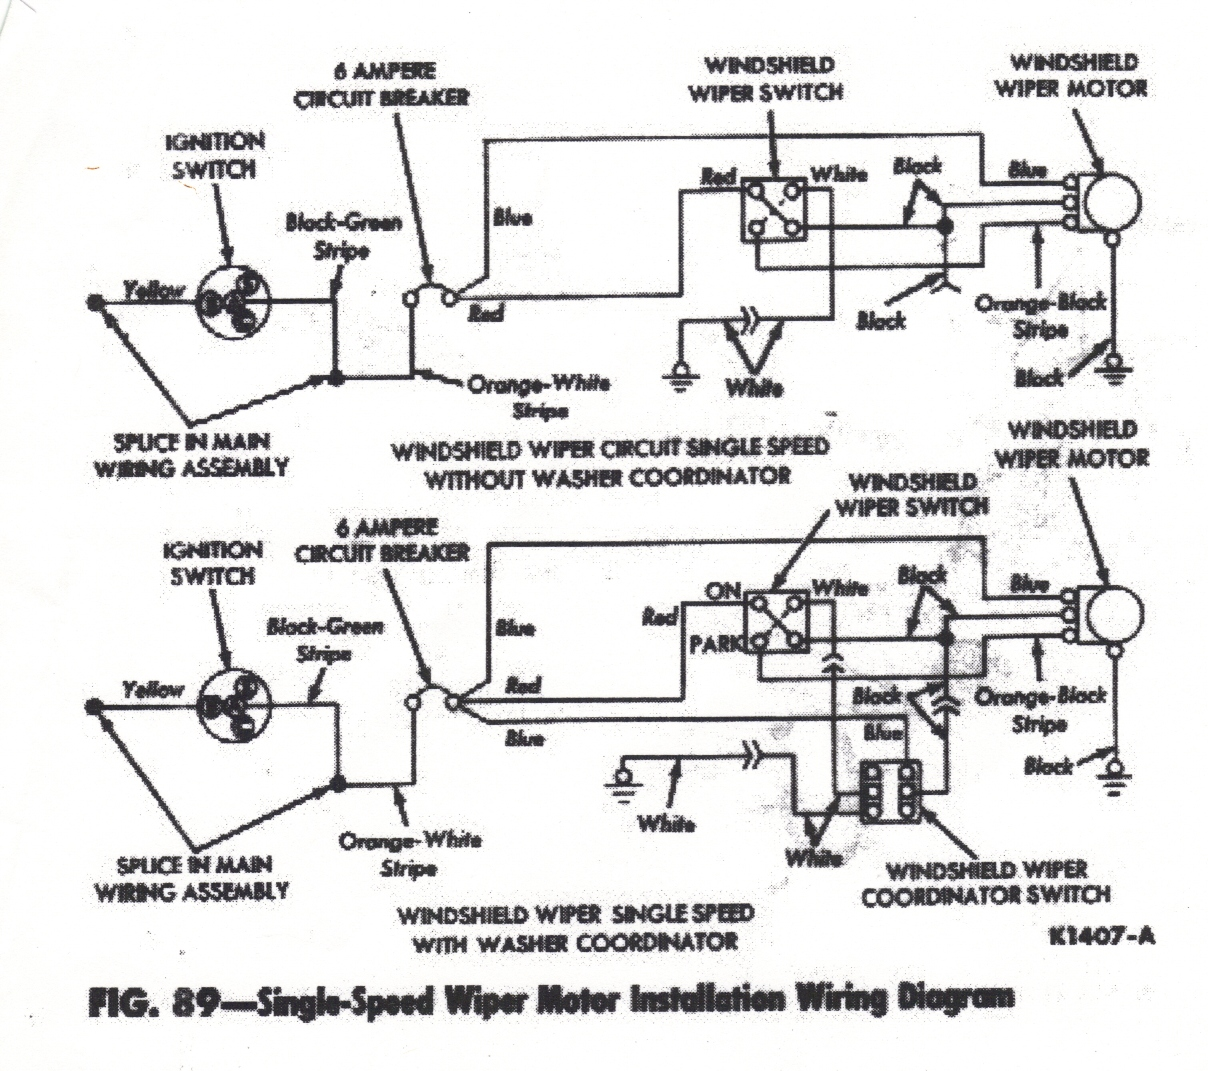 [DIAGRAM_1JK]  91130 Wiring Diagram For 1963 Ford Falcon Ranchero | Wiring Resources | 1966 Ford Falcon Wiring |  | Wiring Resources